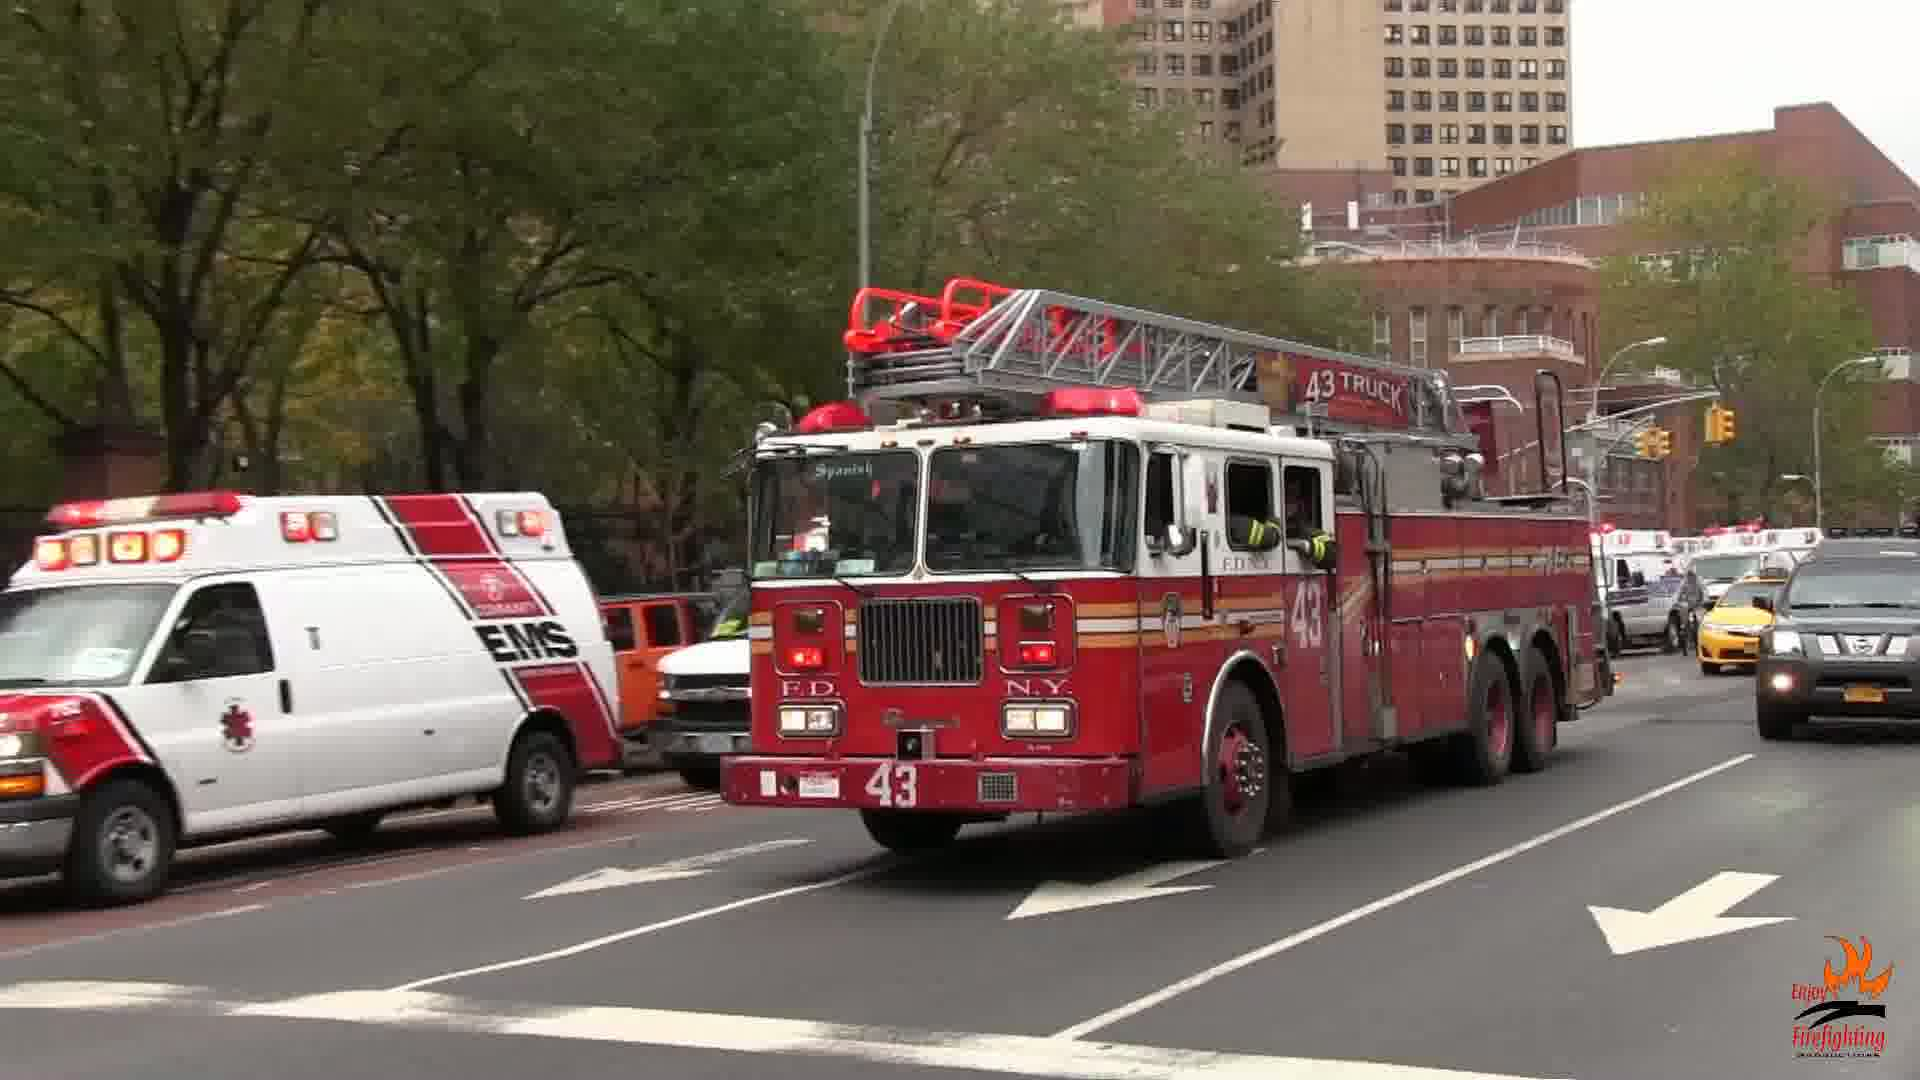 Ladder Truck 43 FDNY + Ambulance Medstar